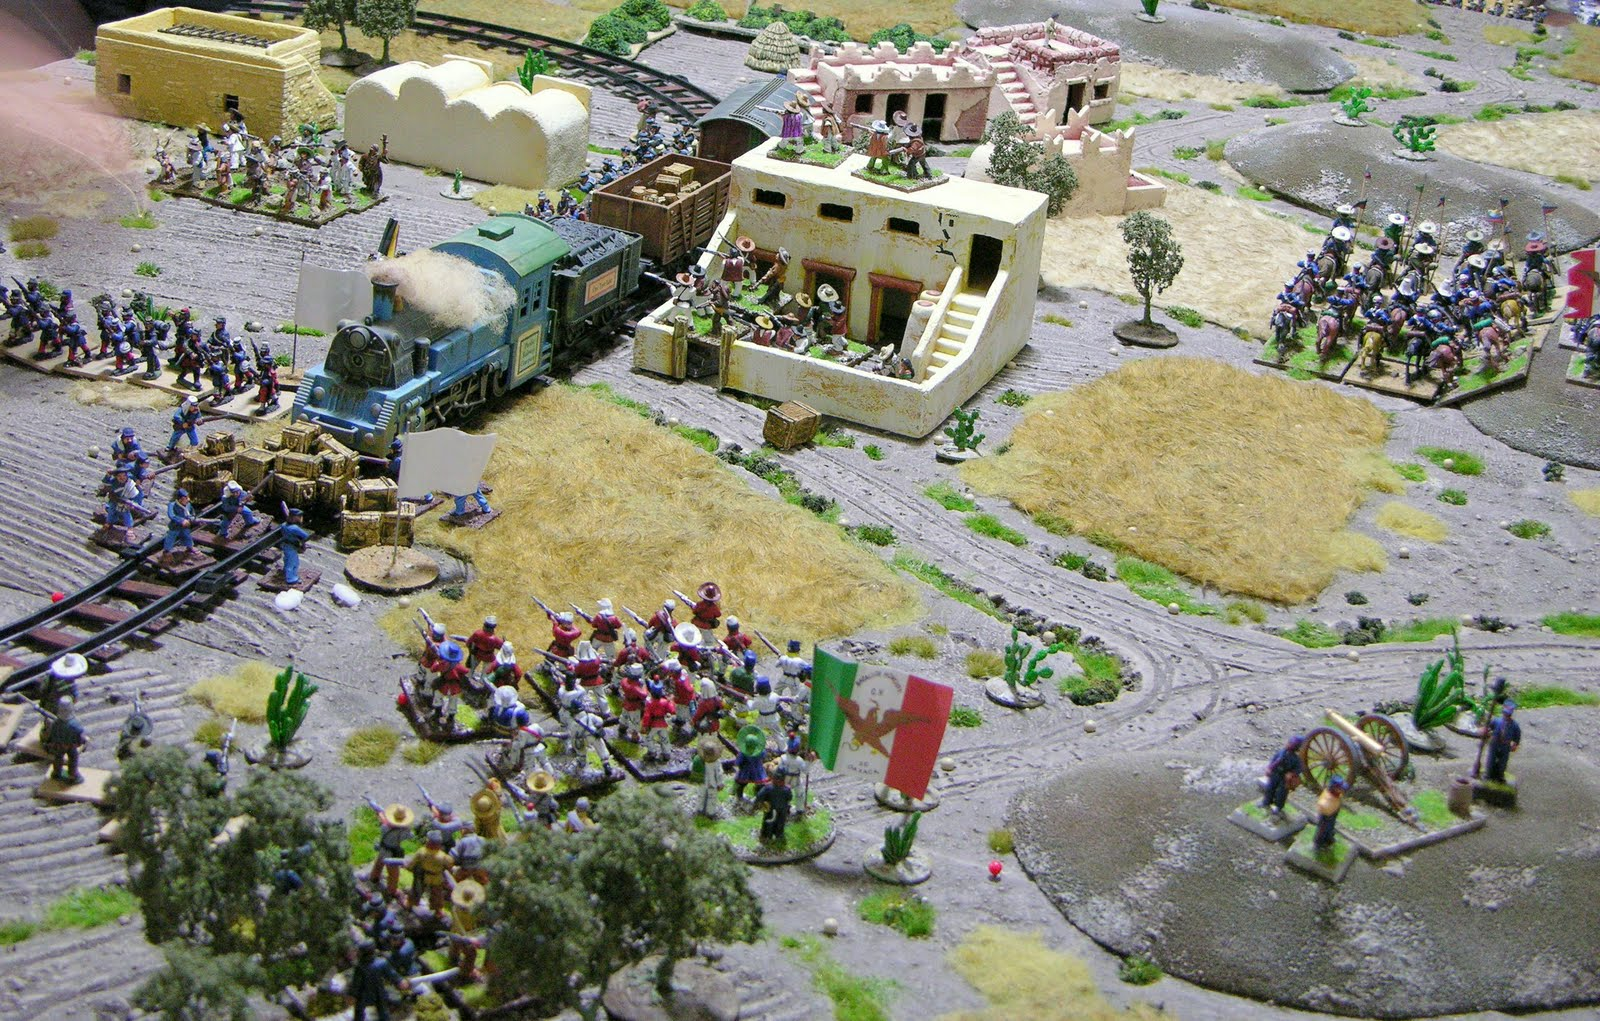 an introduction to the battle of marston The battle of marston moor, 1644 in this article we present an introduction to the covenanters and a scenario for gaming a clash with the forces of prince rupert.